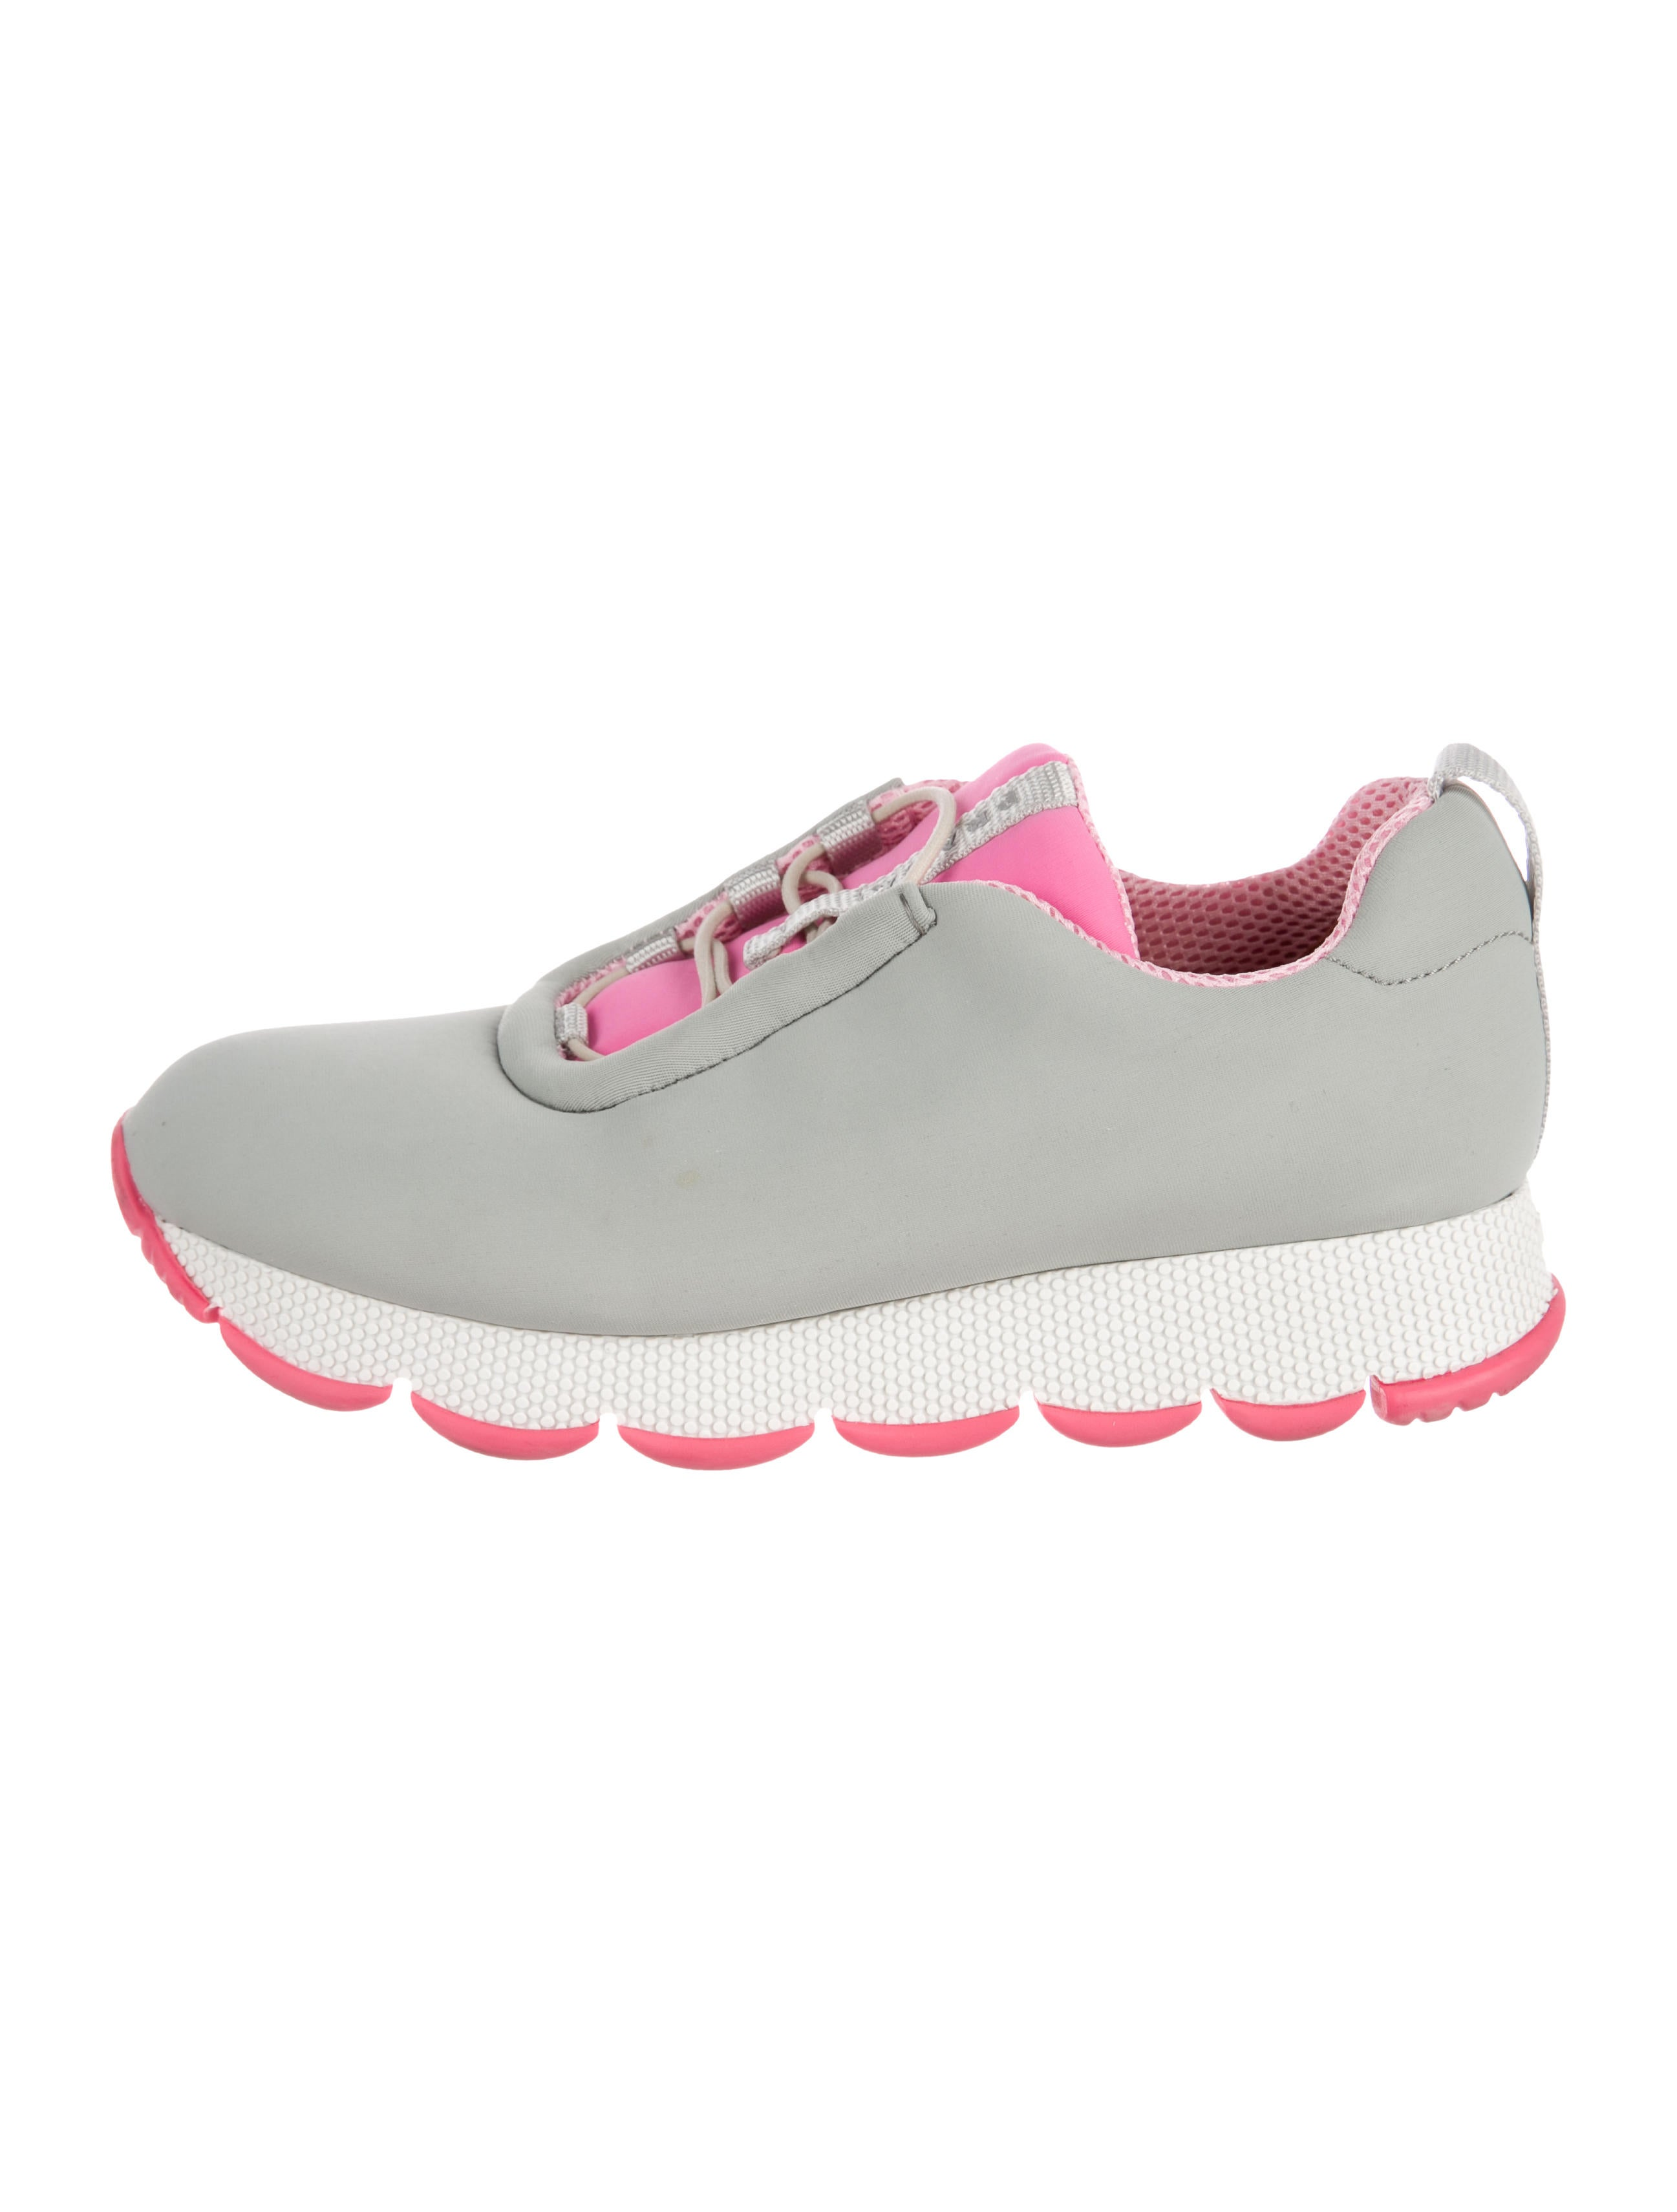 Prada Sport Neoprene Low-Top Sneakers amazing price online 8f2H7Ucle